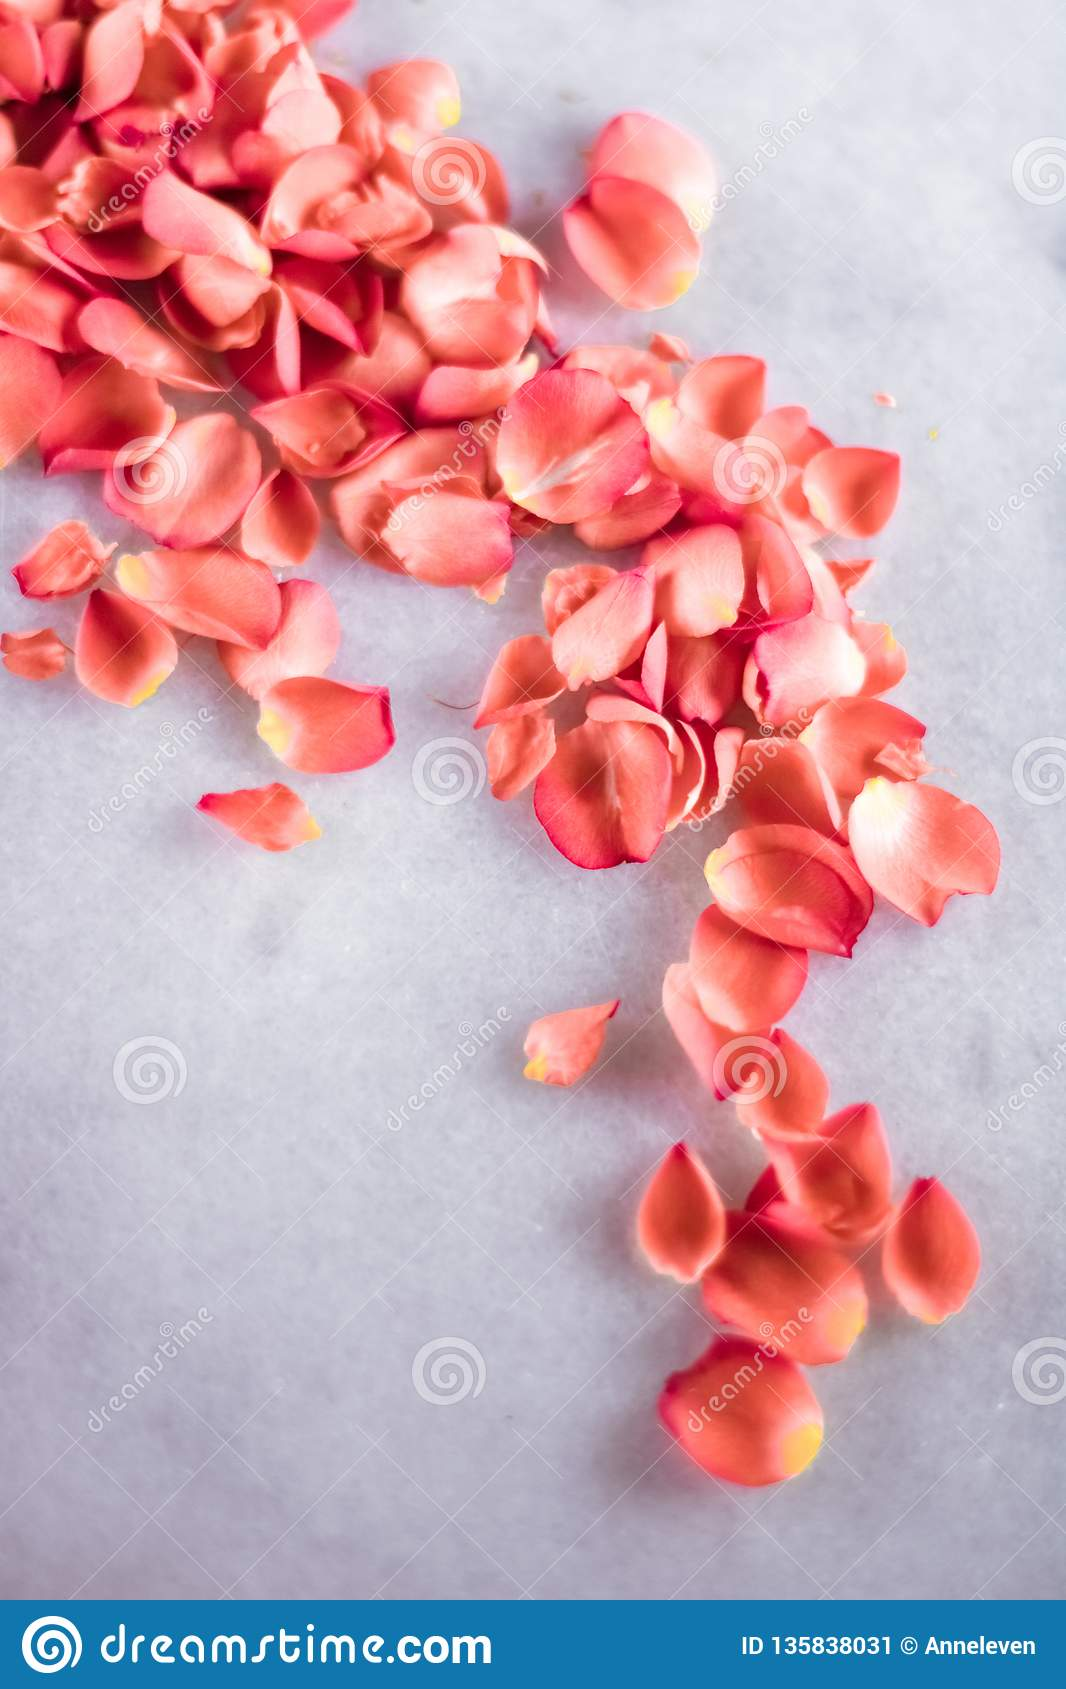 coral rose petals on marble, color of the year - flower backgrounds, holidays and floral art concept